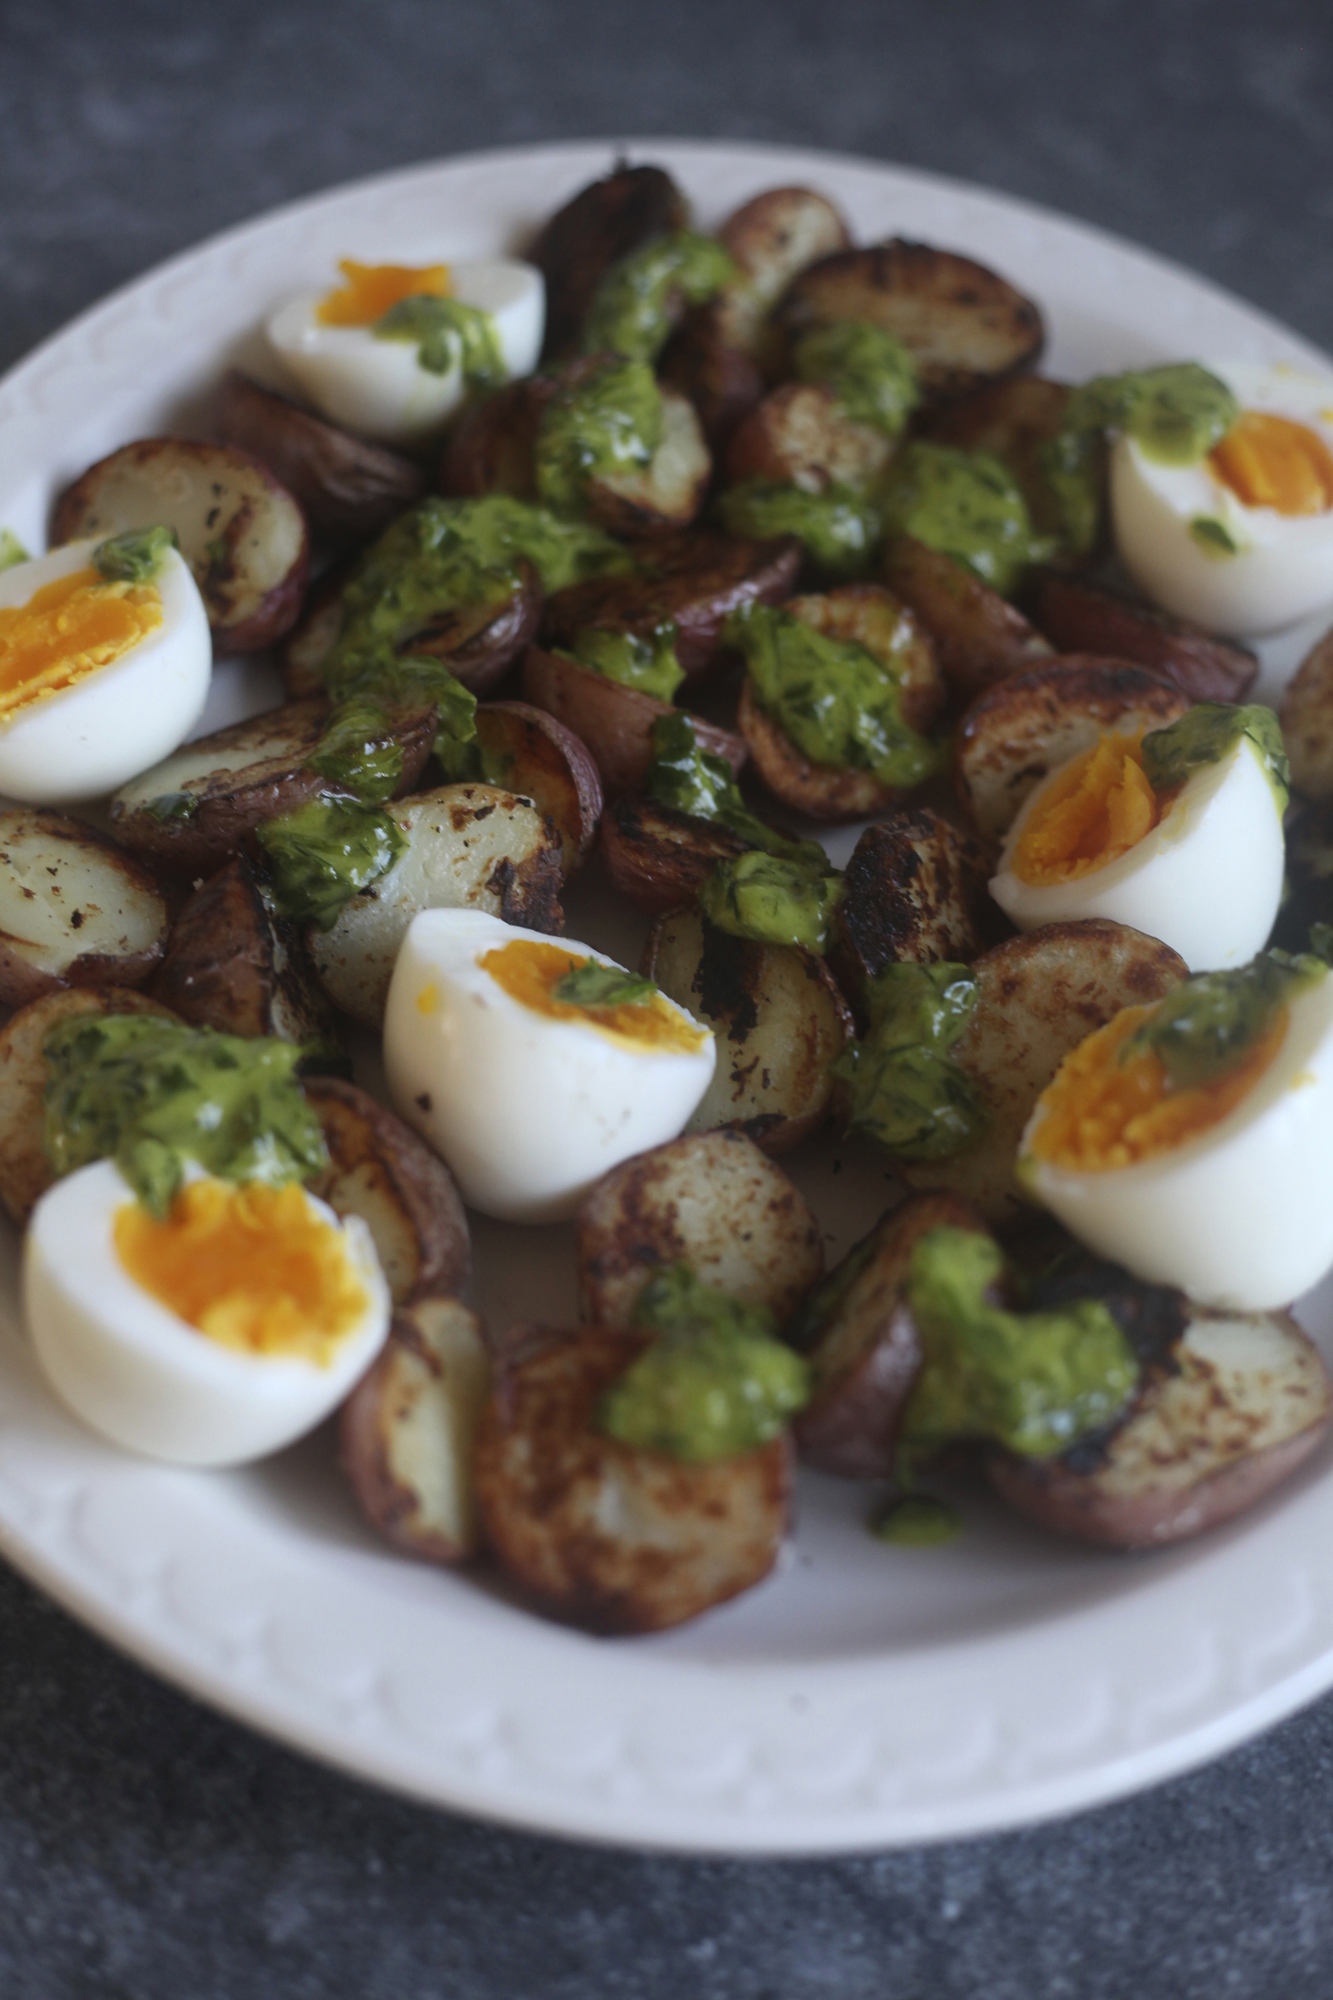 Crispy Potatoes and Soft Cooked Eggs with Herb Dressing